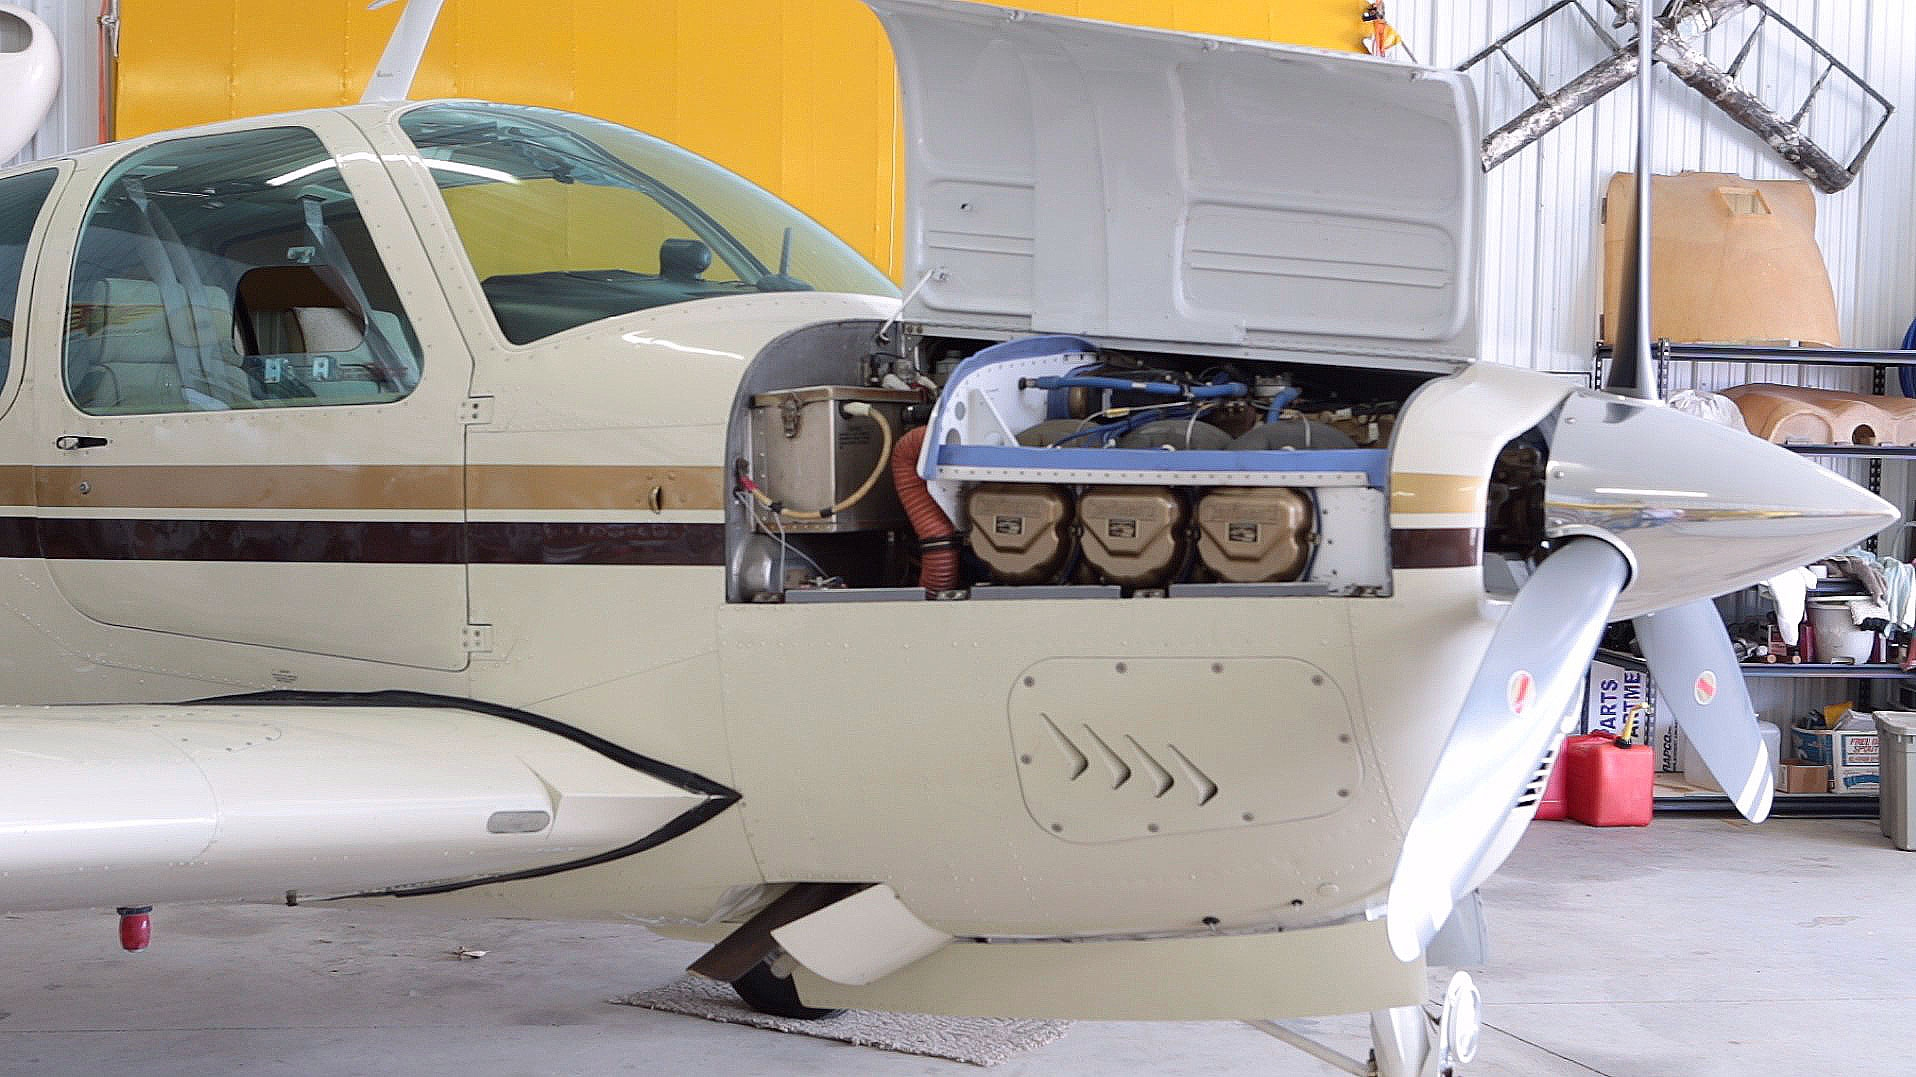 Proper care and maintenance of aircraft exhaust systems is essential.